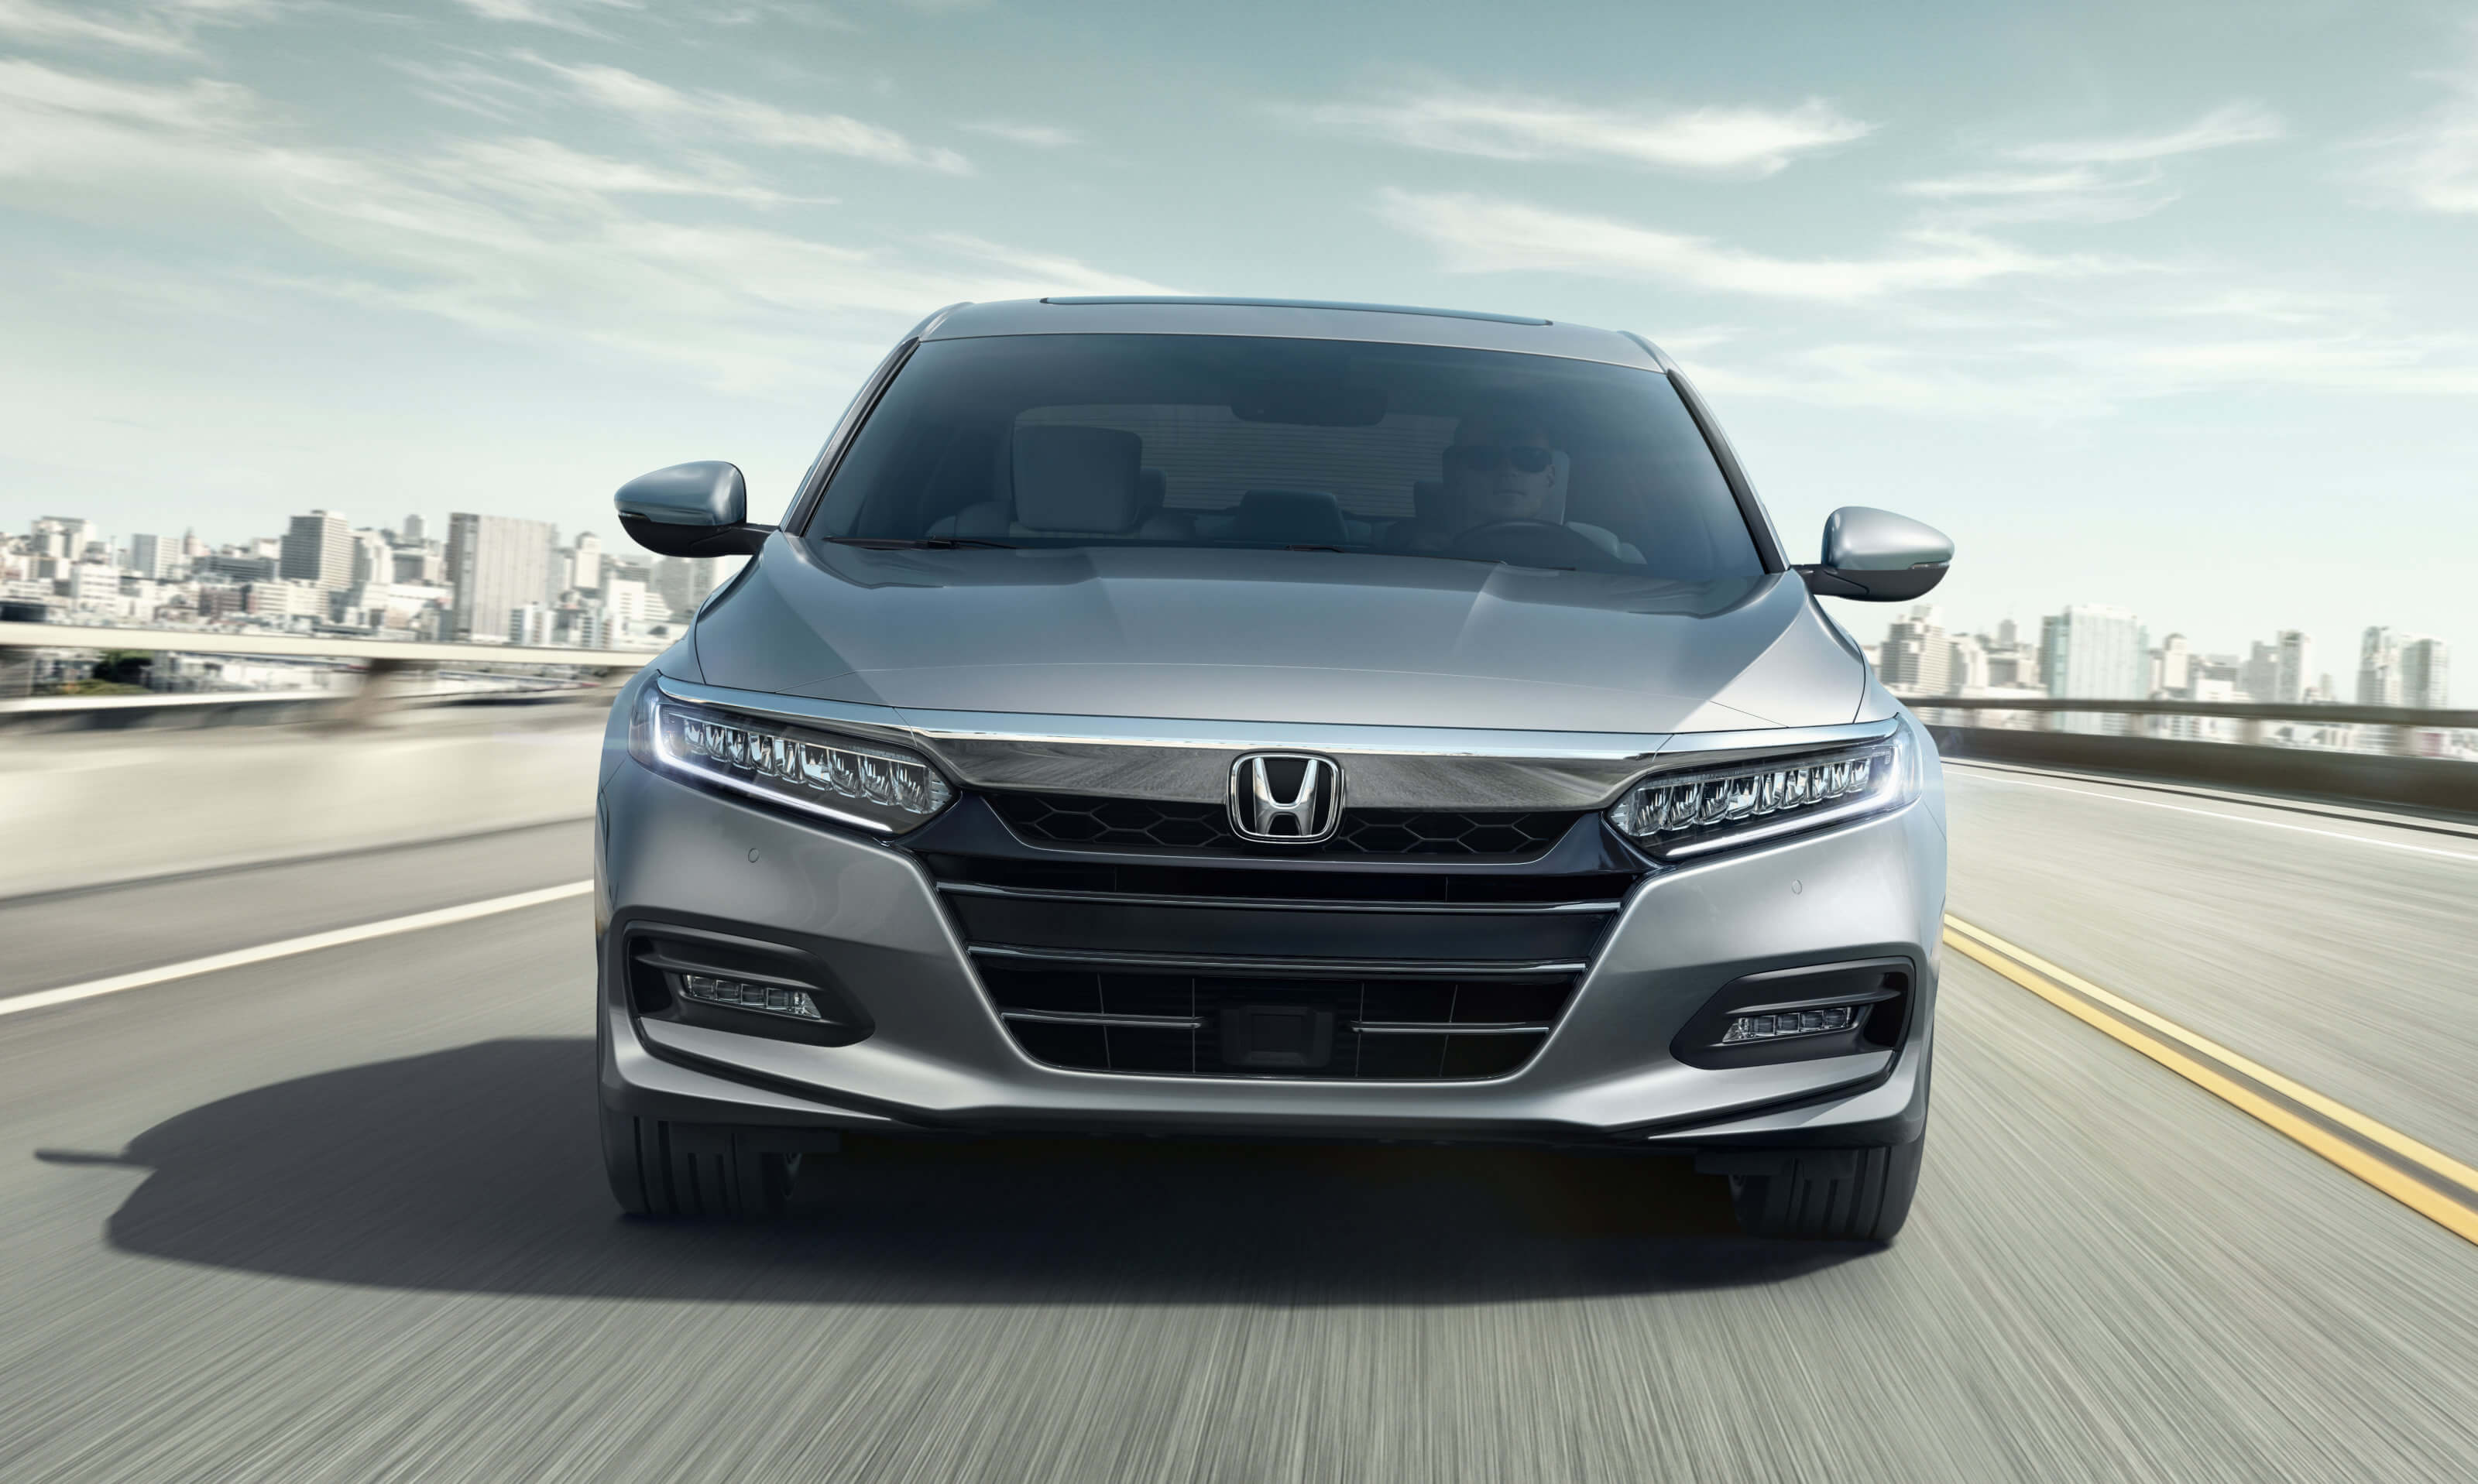 2020 Honda Accord Hybrid front exterior view